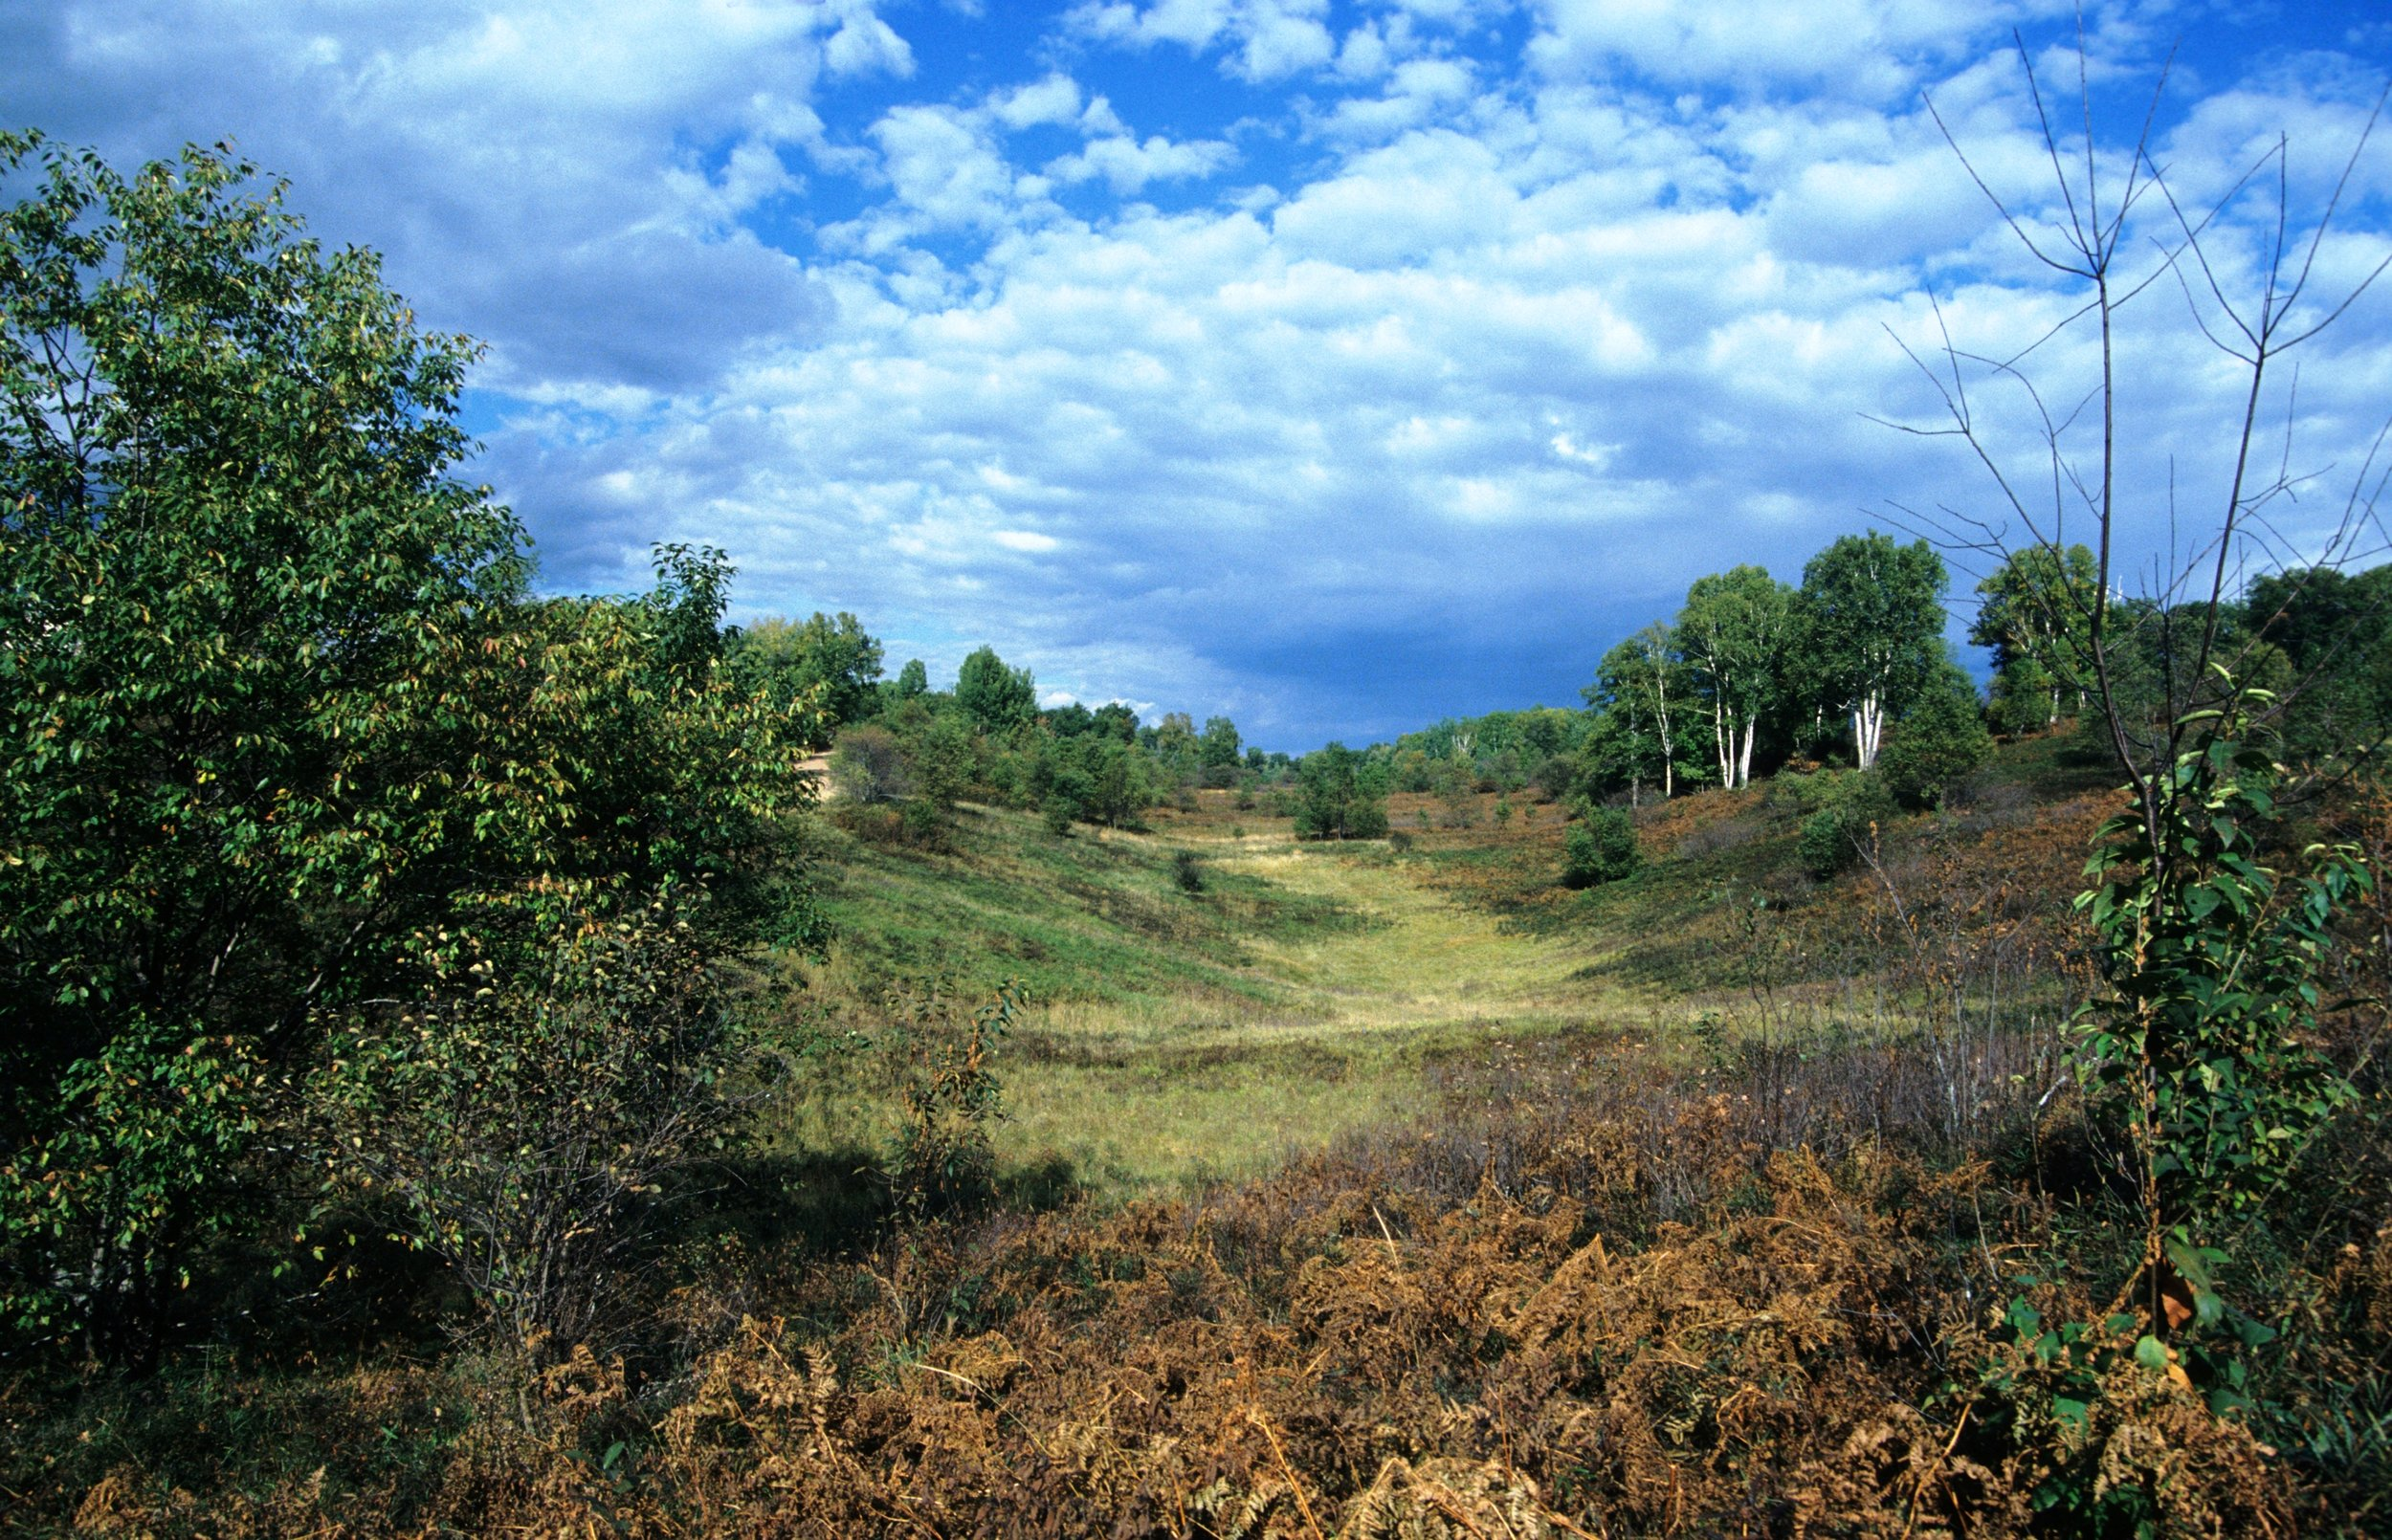 Spread Eagle Barrens in northern Wisconsin, comprised of bracken grassland and scattered with jack pine, red pine, scrub oak, and quaking aspen. Photo by Wisconsin Department of Natural Resources